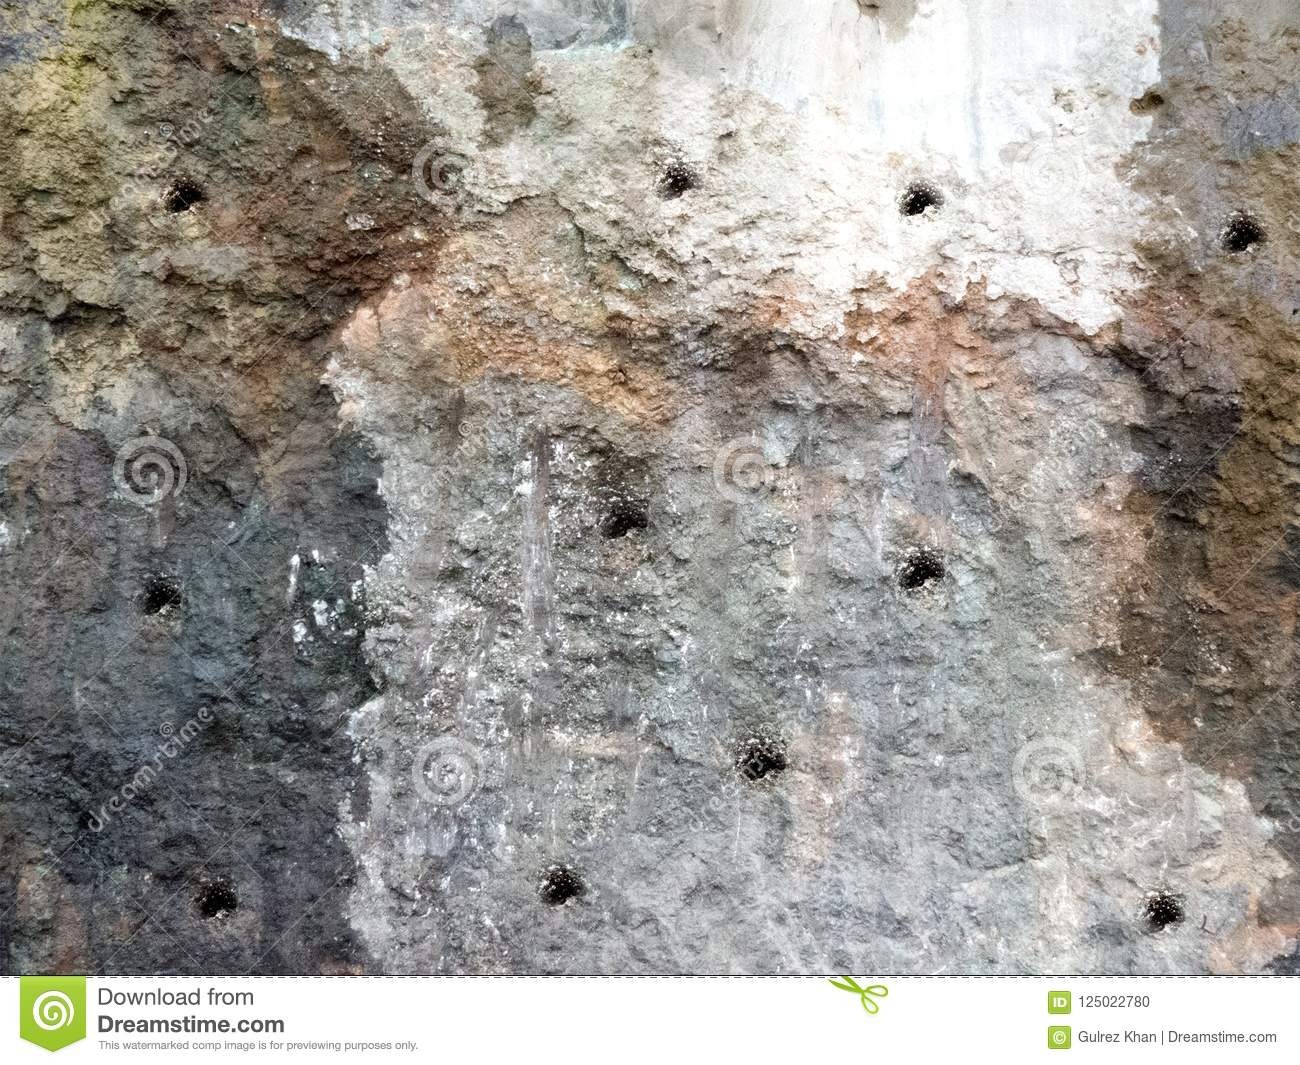 Dynamite Holes for explosive filing on a Mountain Rock